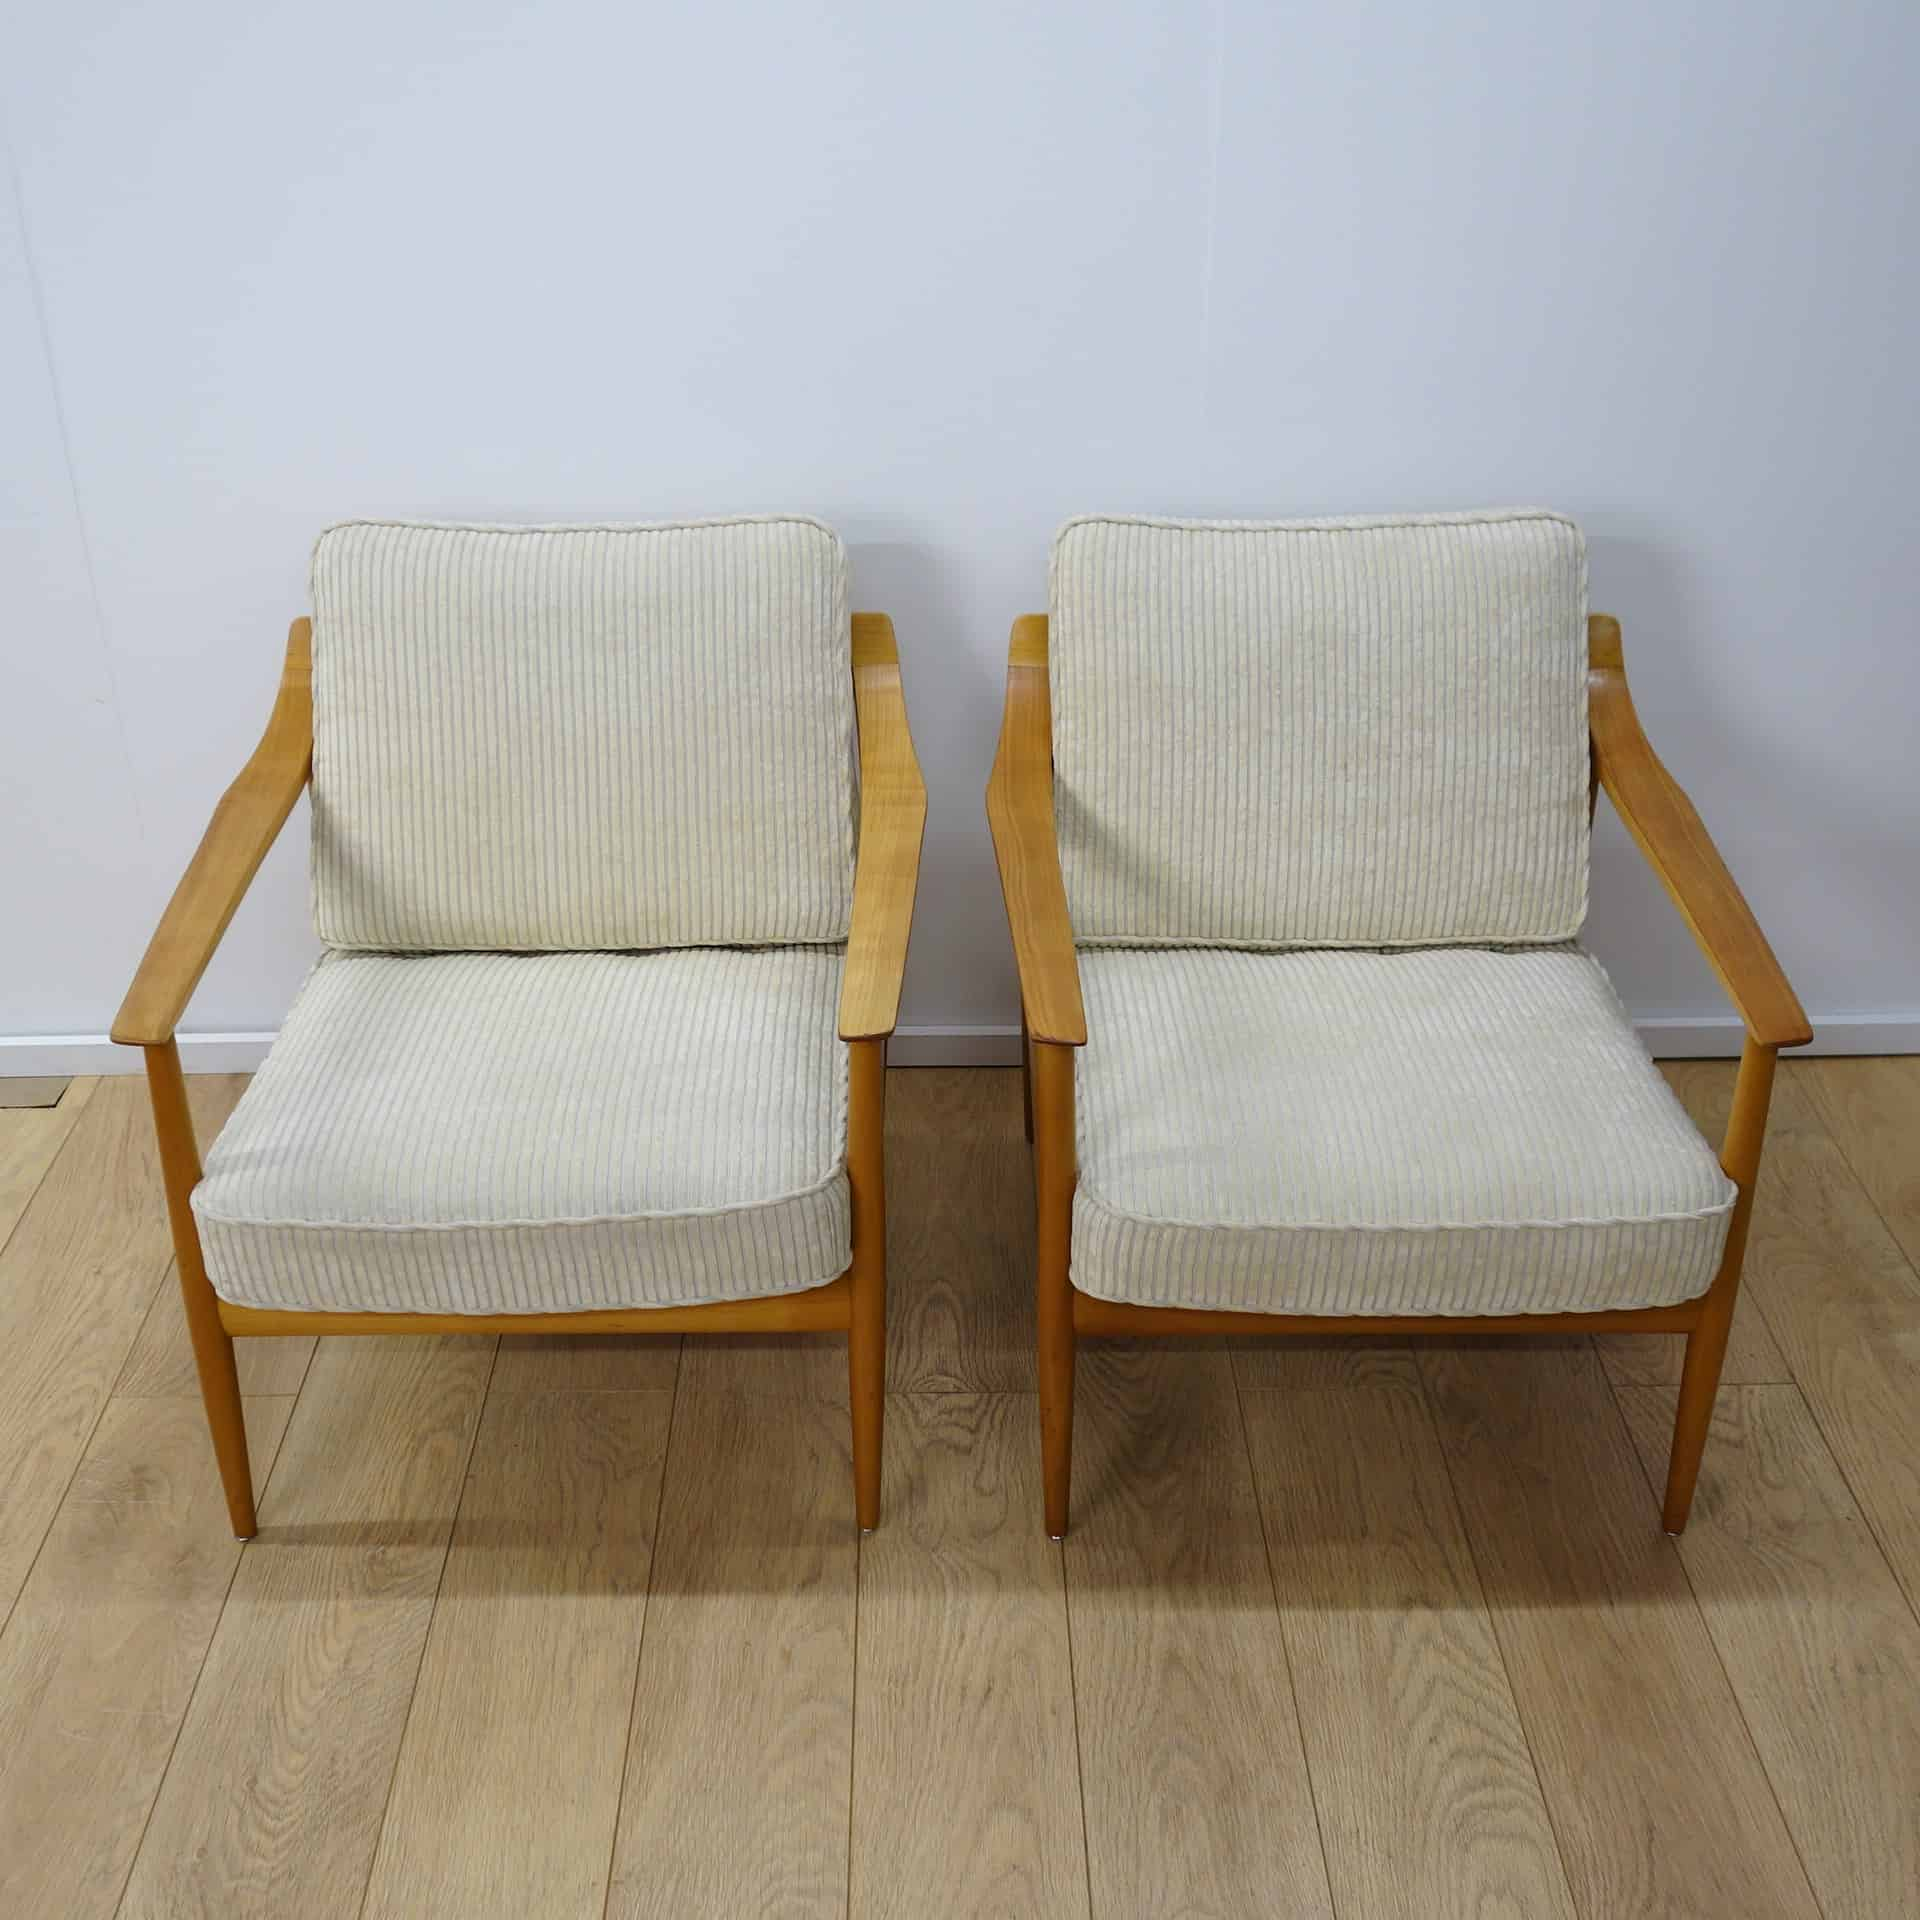 Pair of Wilhelm Knoll arm chairs